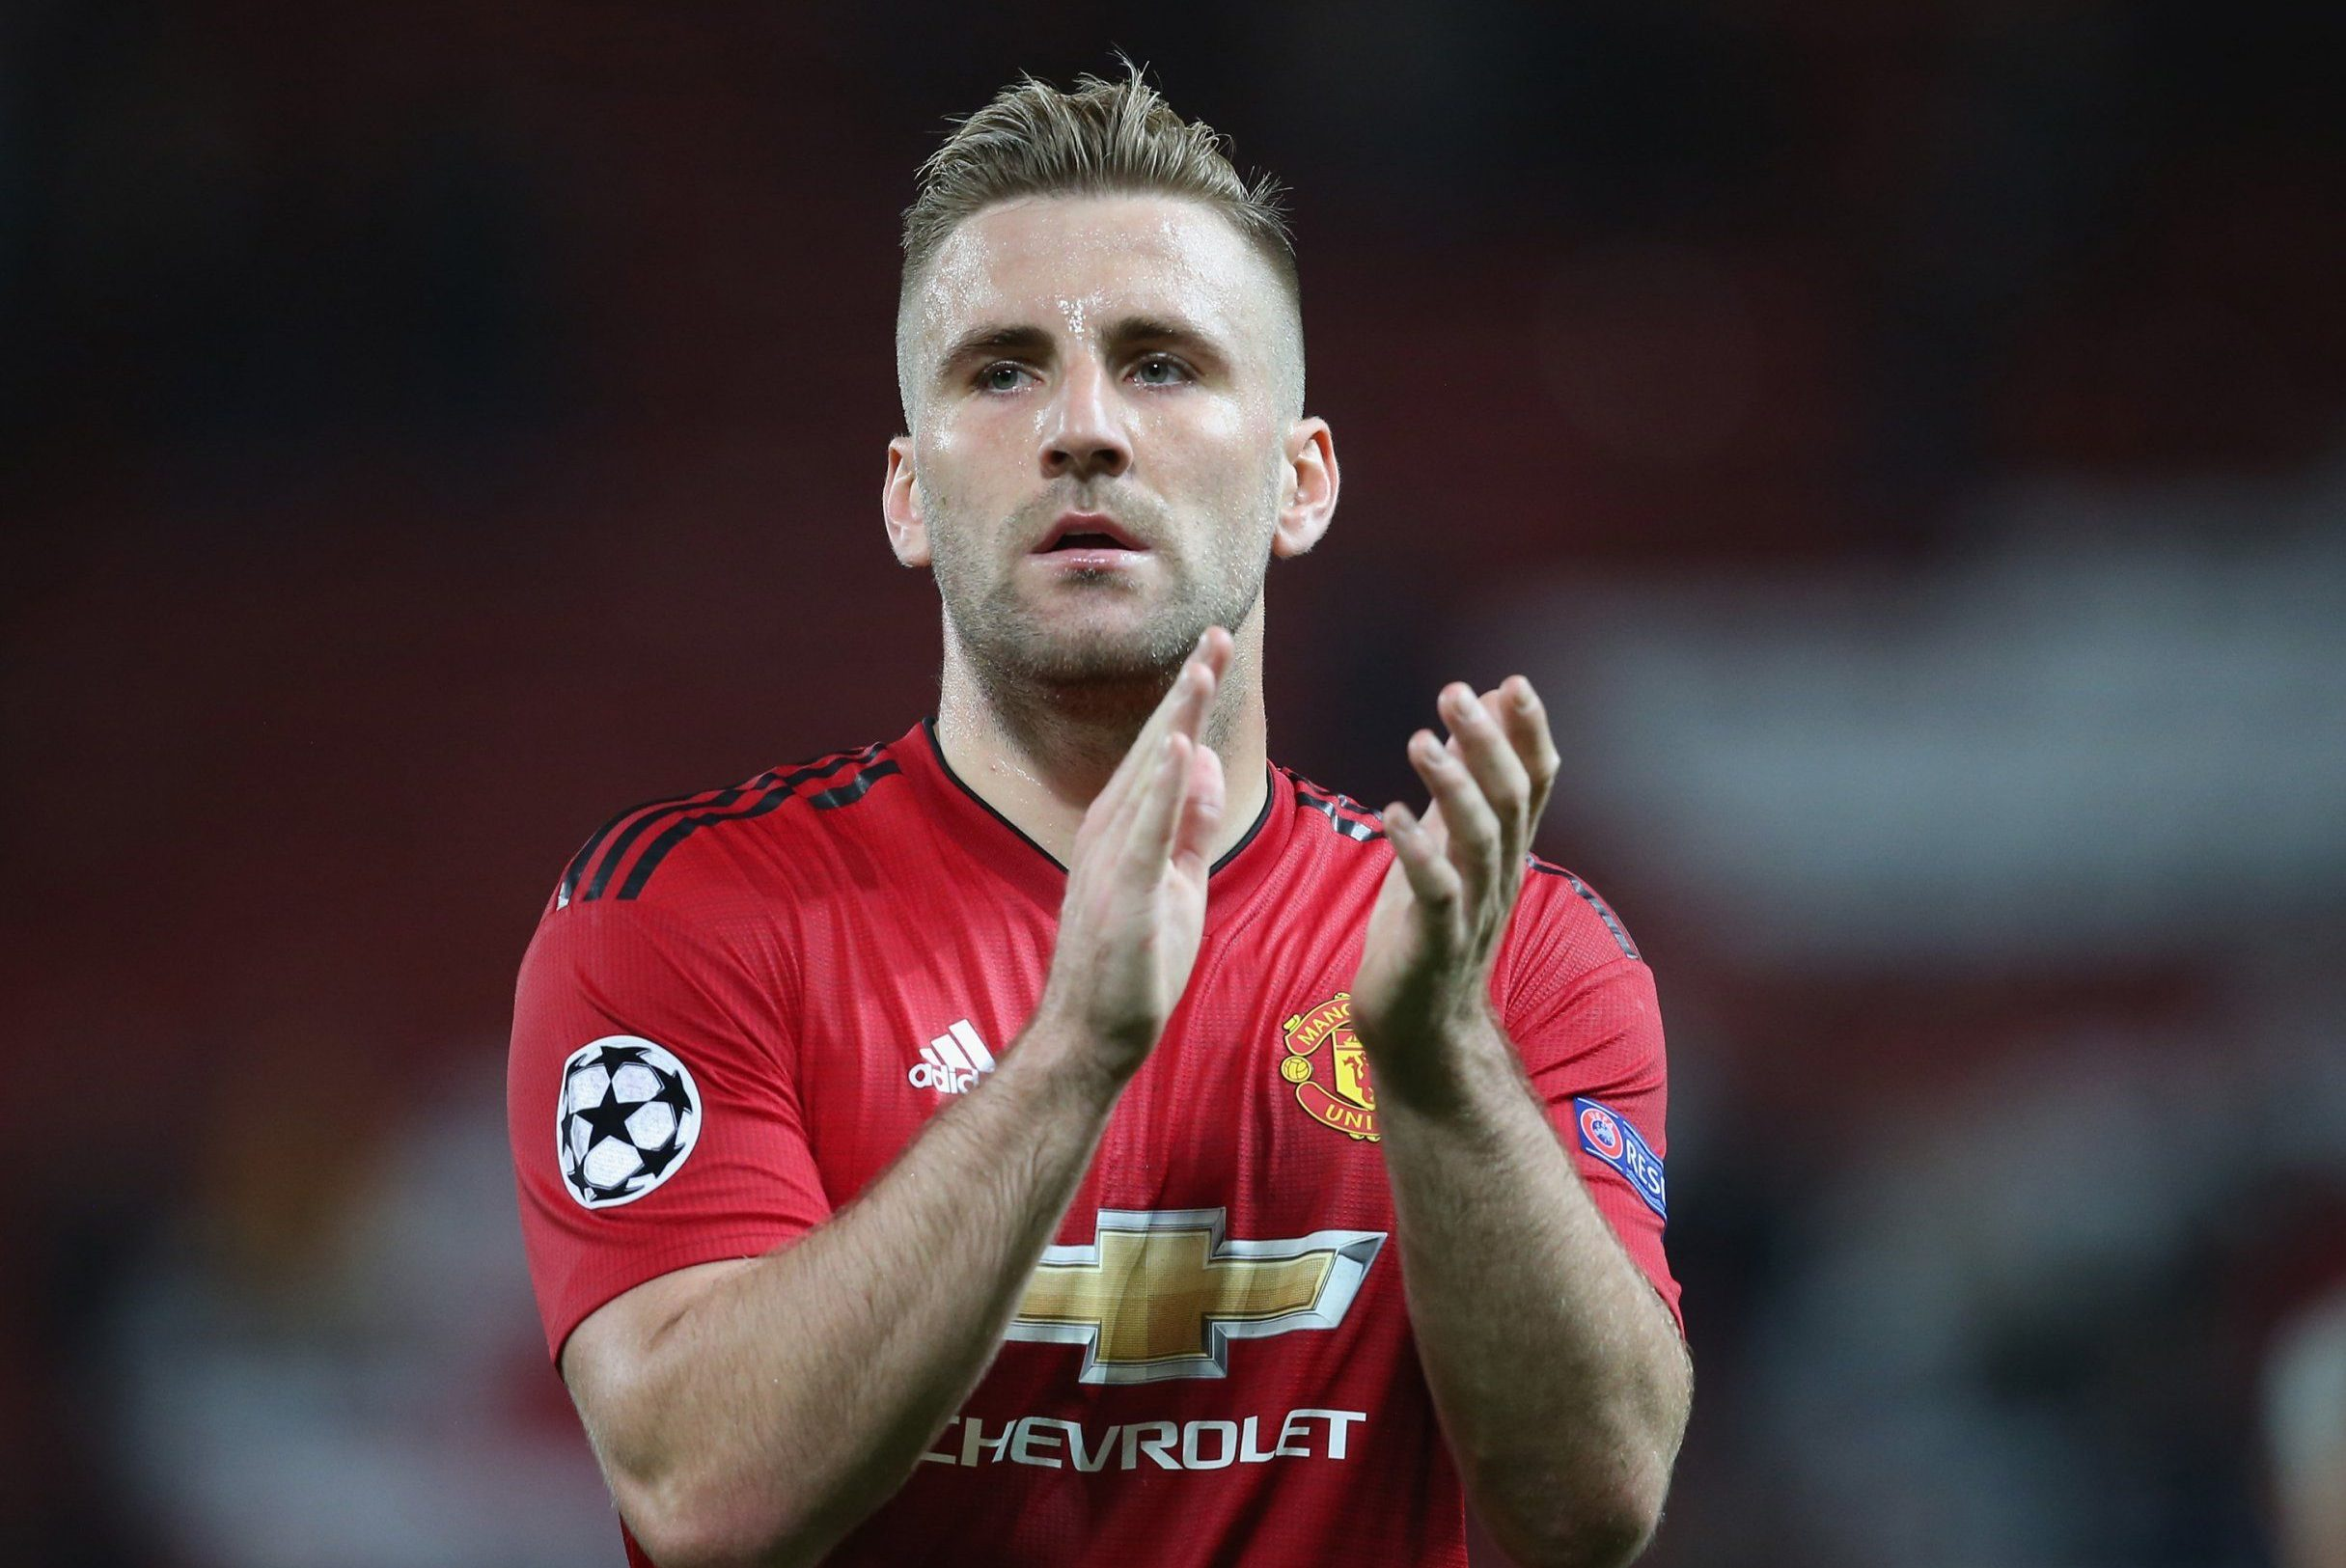 MANCHESTER, ENGLAND - OCTOBER 02: Luke Shaw of Manchester United walks off after the Group H match of the UEFA Champions League between Manchester United and Valencia at Old Trafford on October 2, 2018 in Manchester, United Kingdom. (Photo by John Peters/Man Utd via Getty Images)